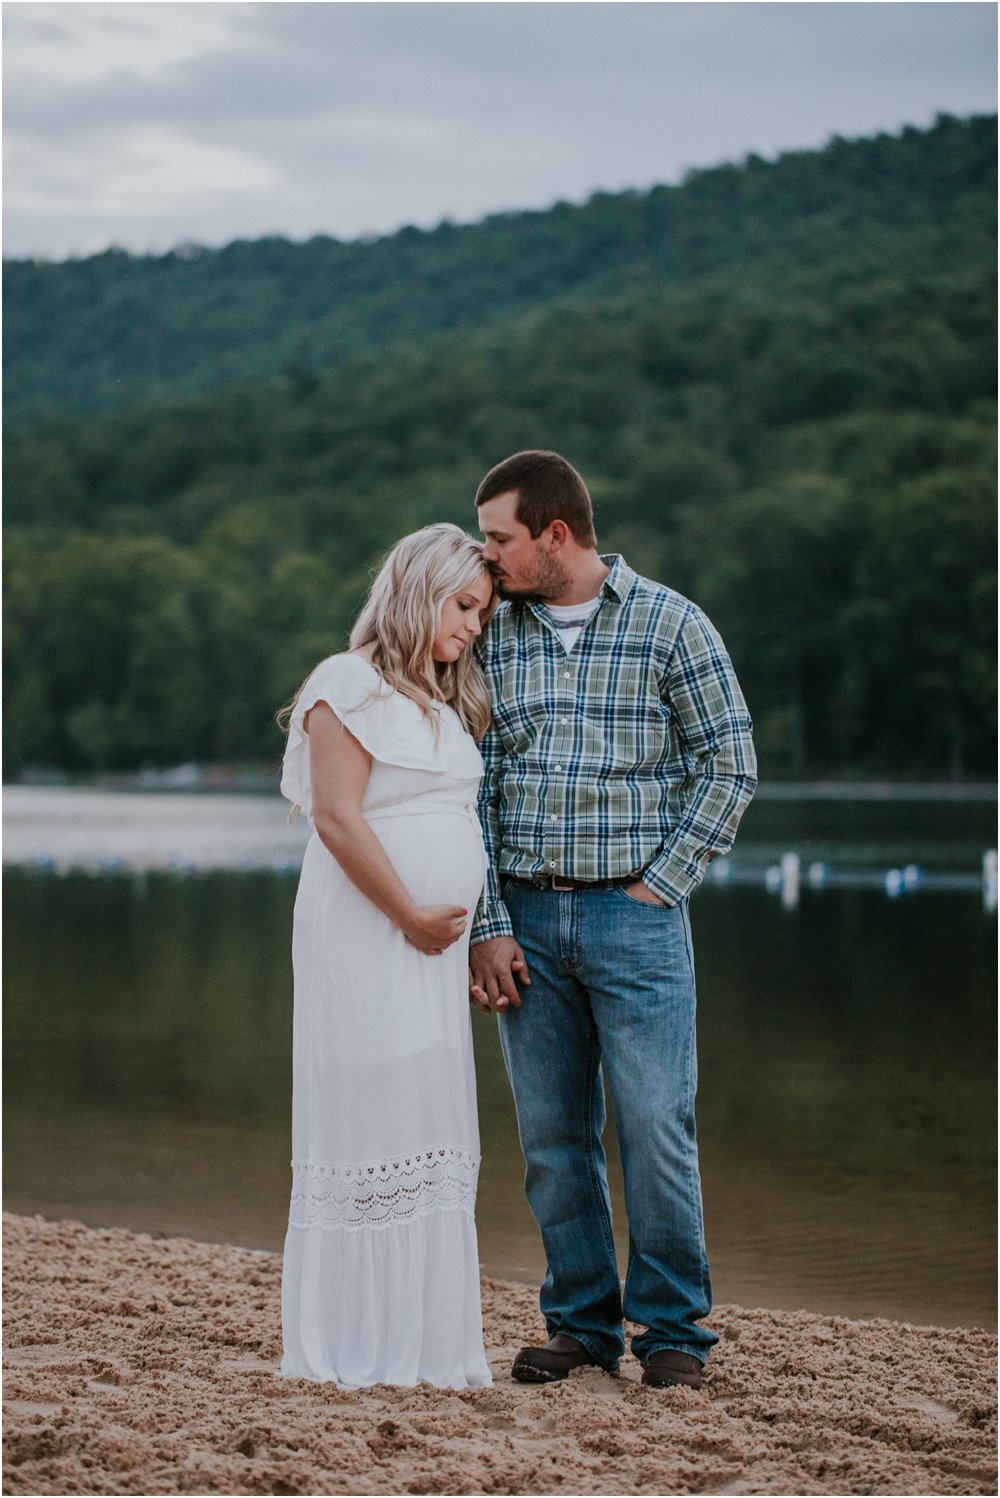 katy-sergent-photography-johnson-city-tennessee-northest-tn-elopement-intimate-wedding-photographer-outdoors-adventurous-couples-adventure-lovers_0033.jpg